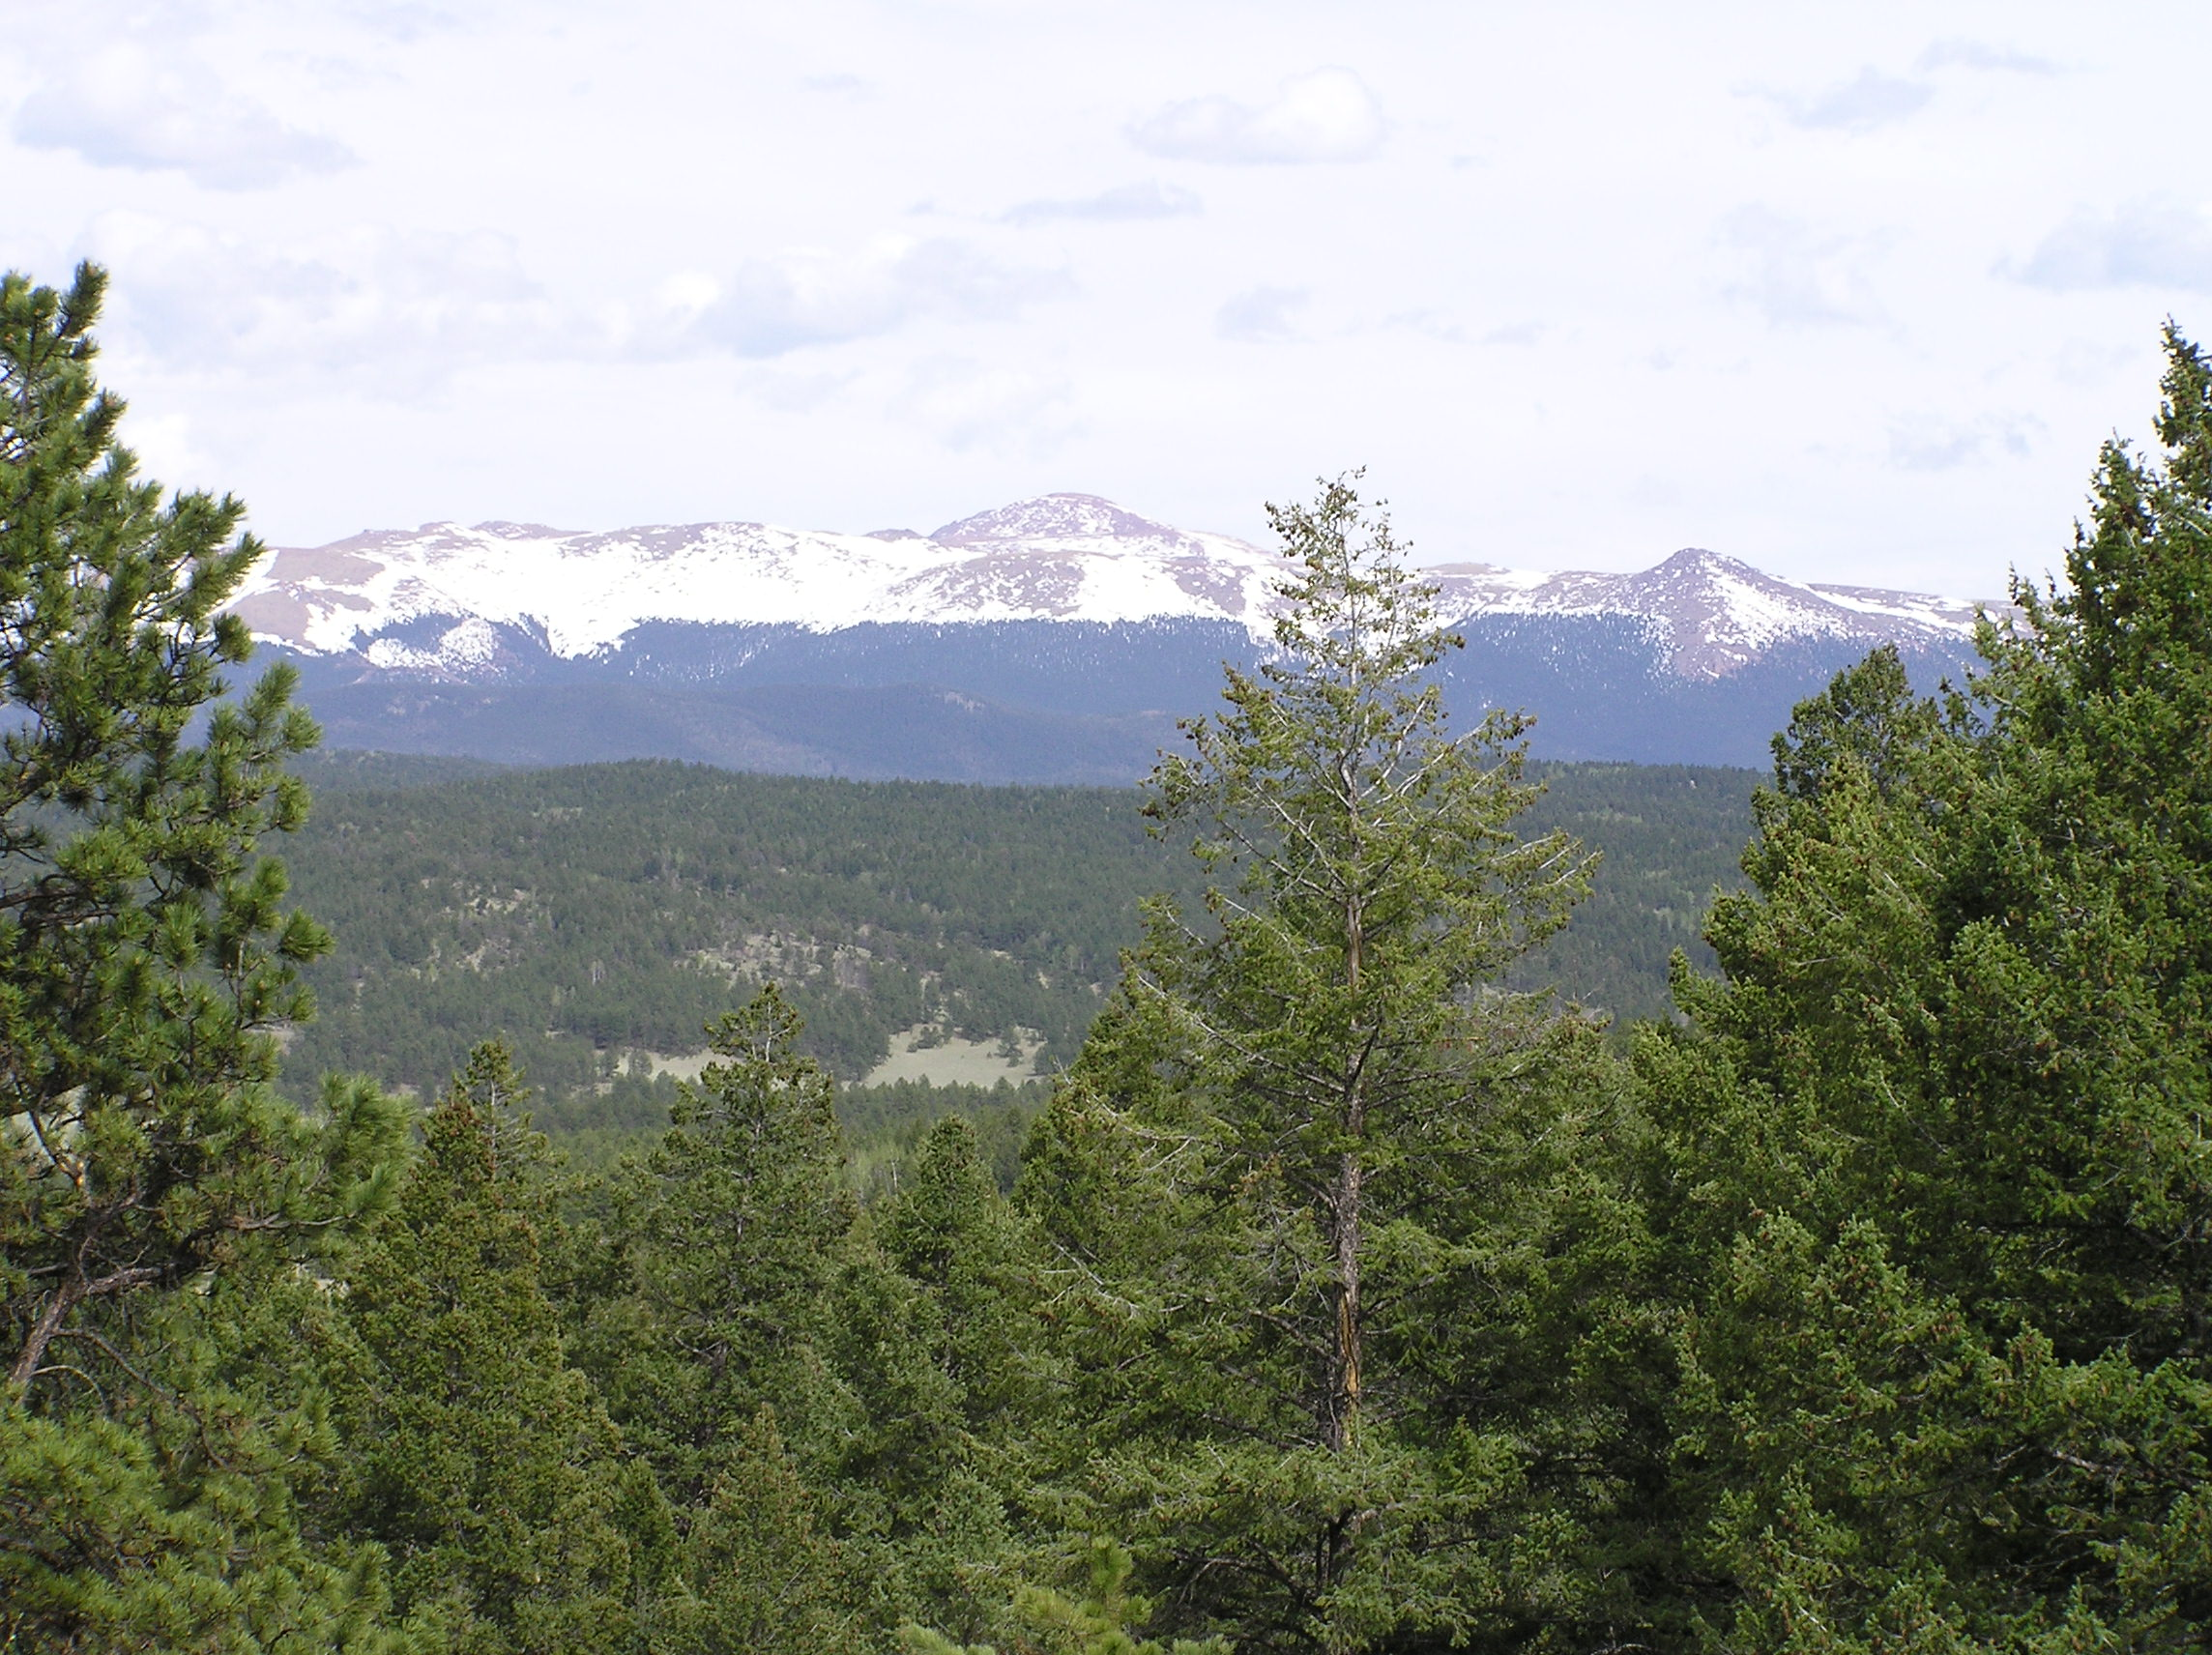 Florissant Fossil Beds National Monument PA272547.jpg English: Location Florissant Fossil Beds National Monument Beneath a grassy